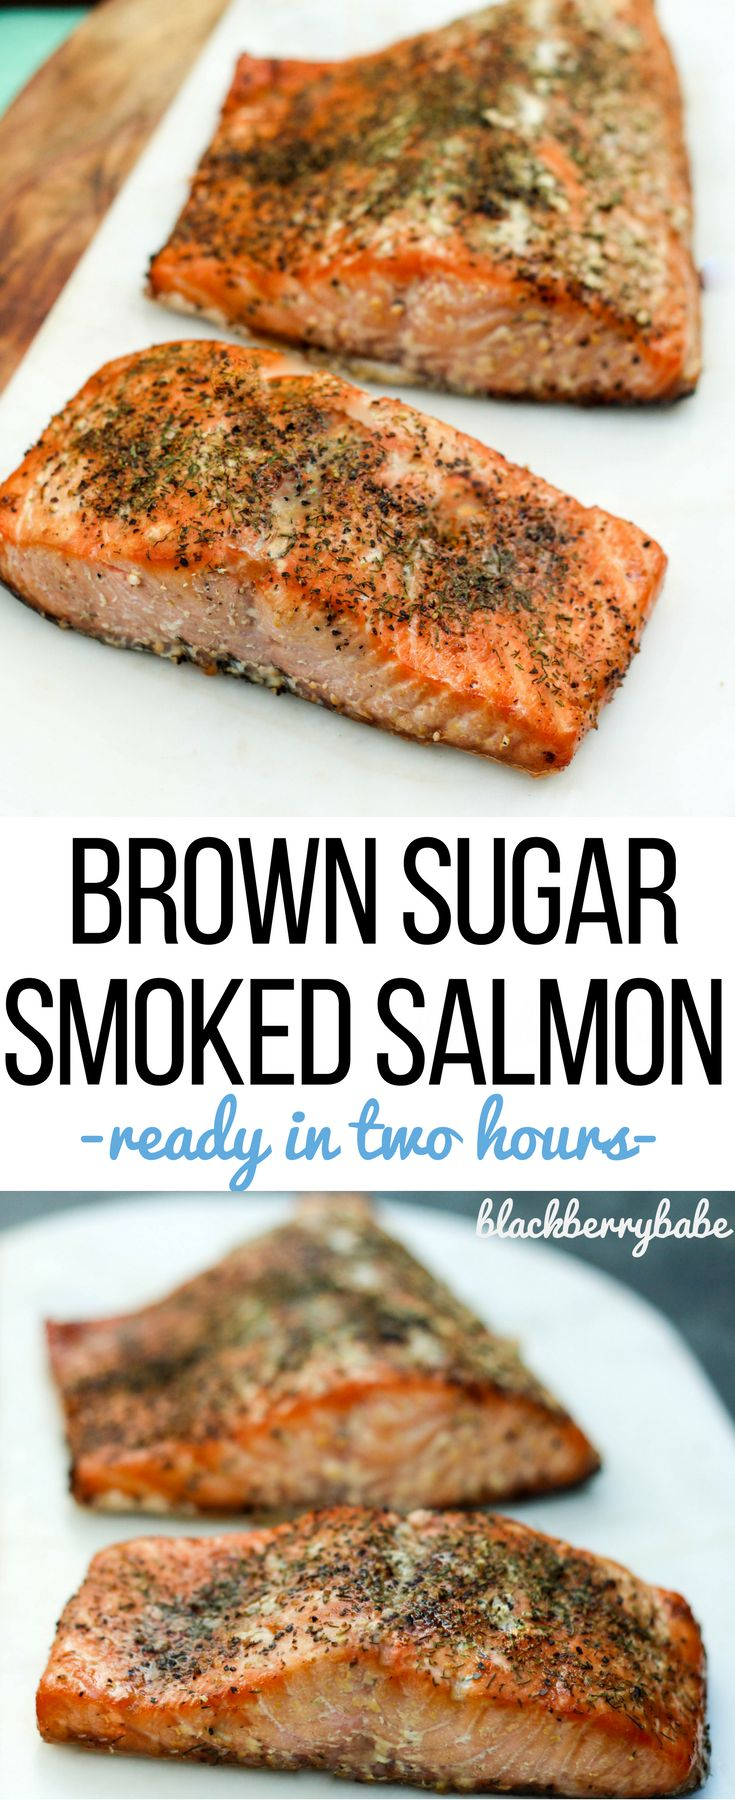 Brown Sugar Smoked Salmon Recipe